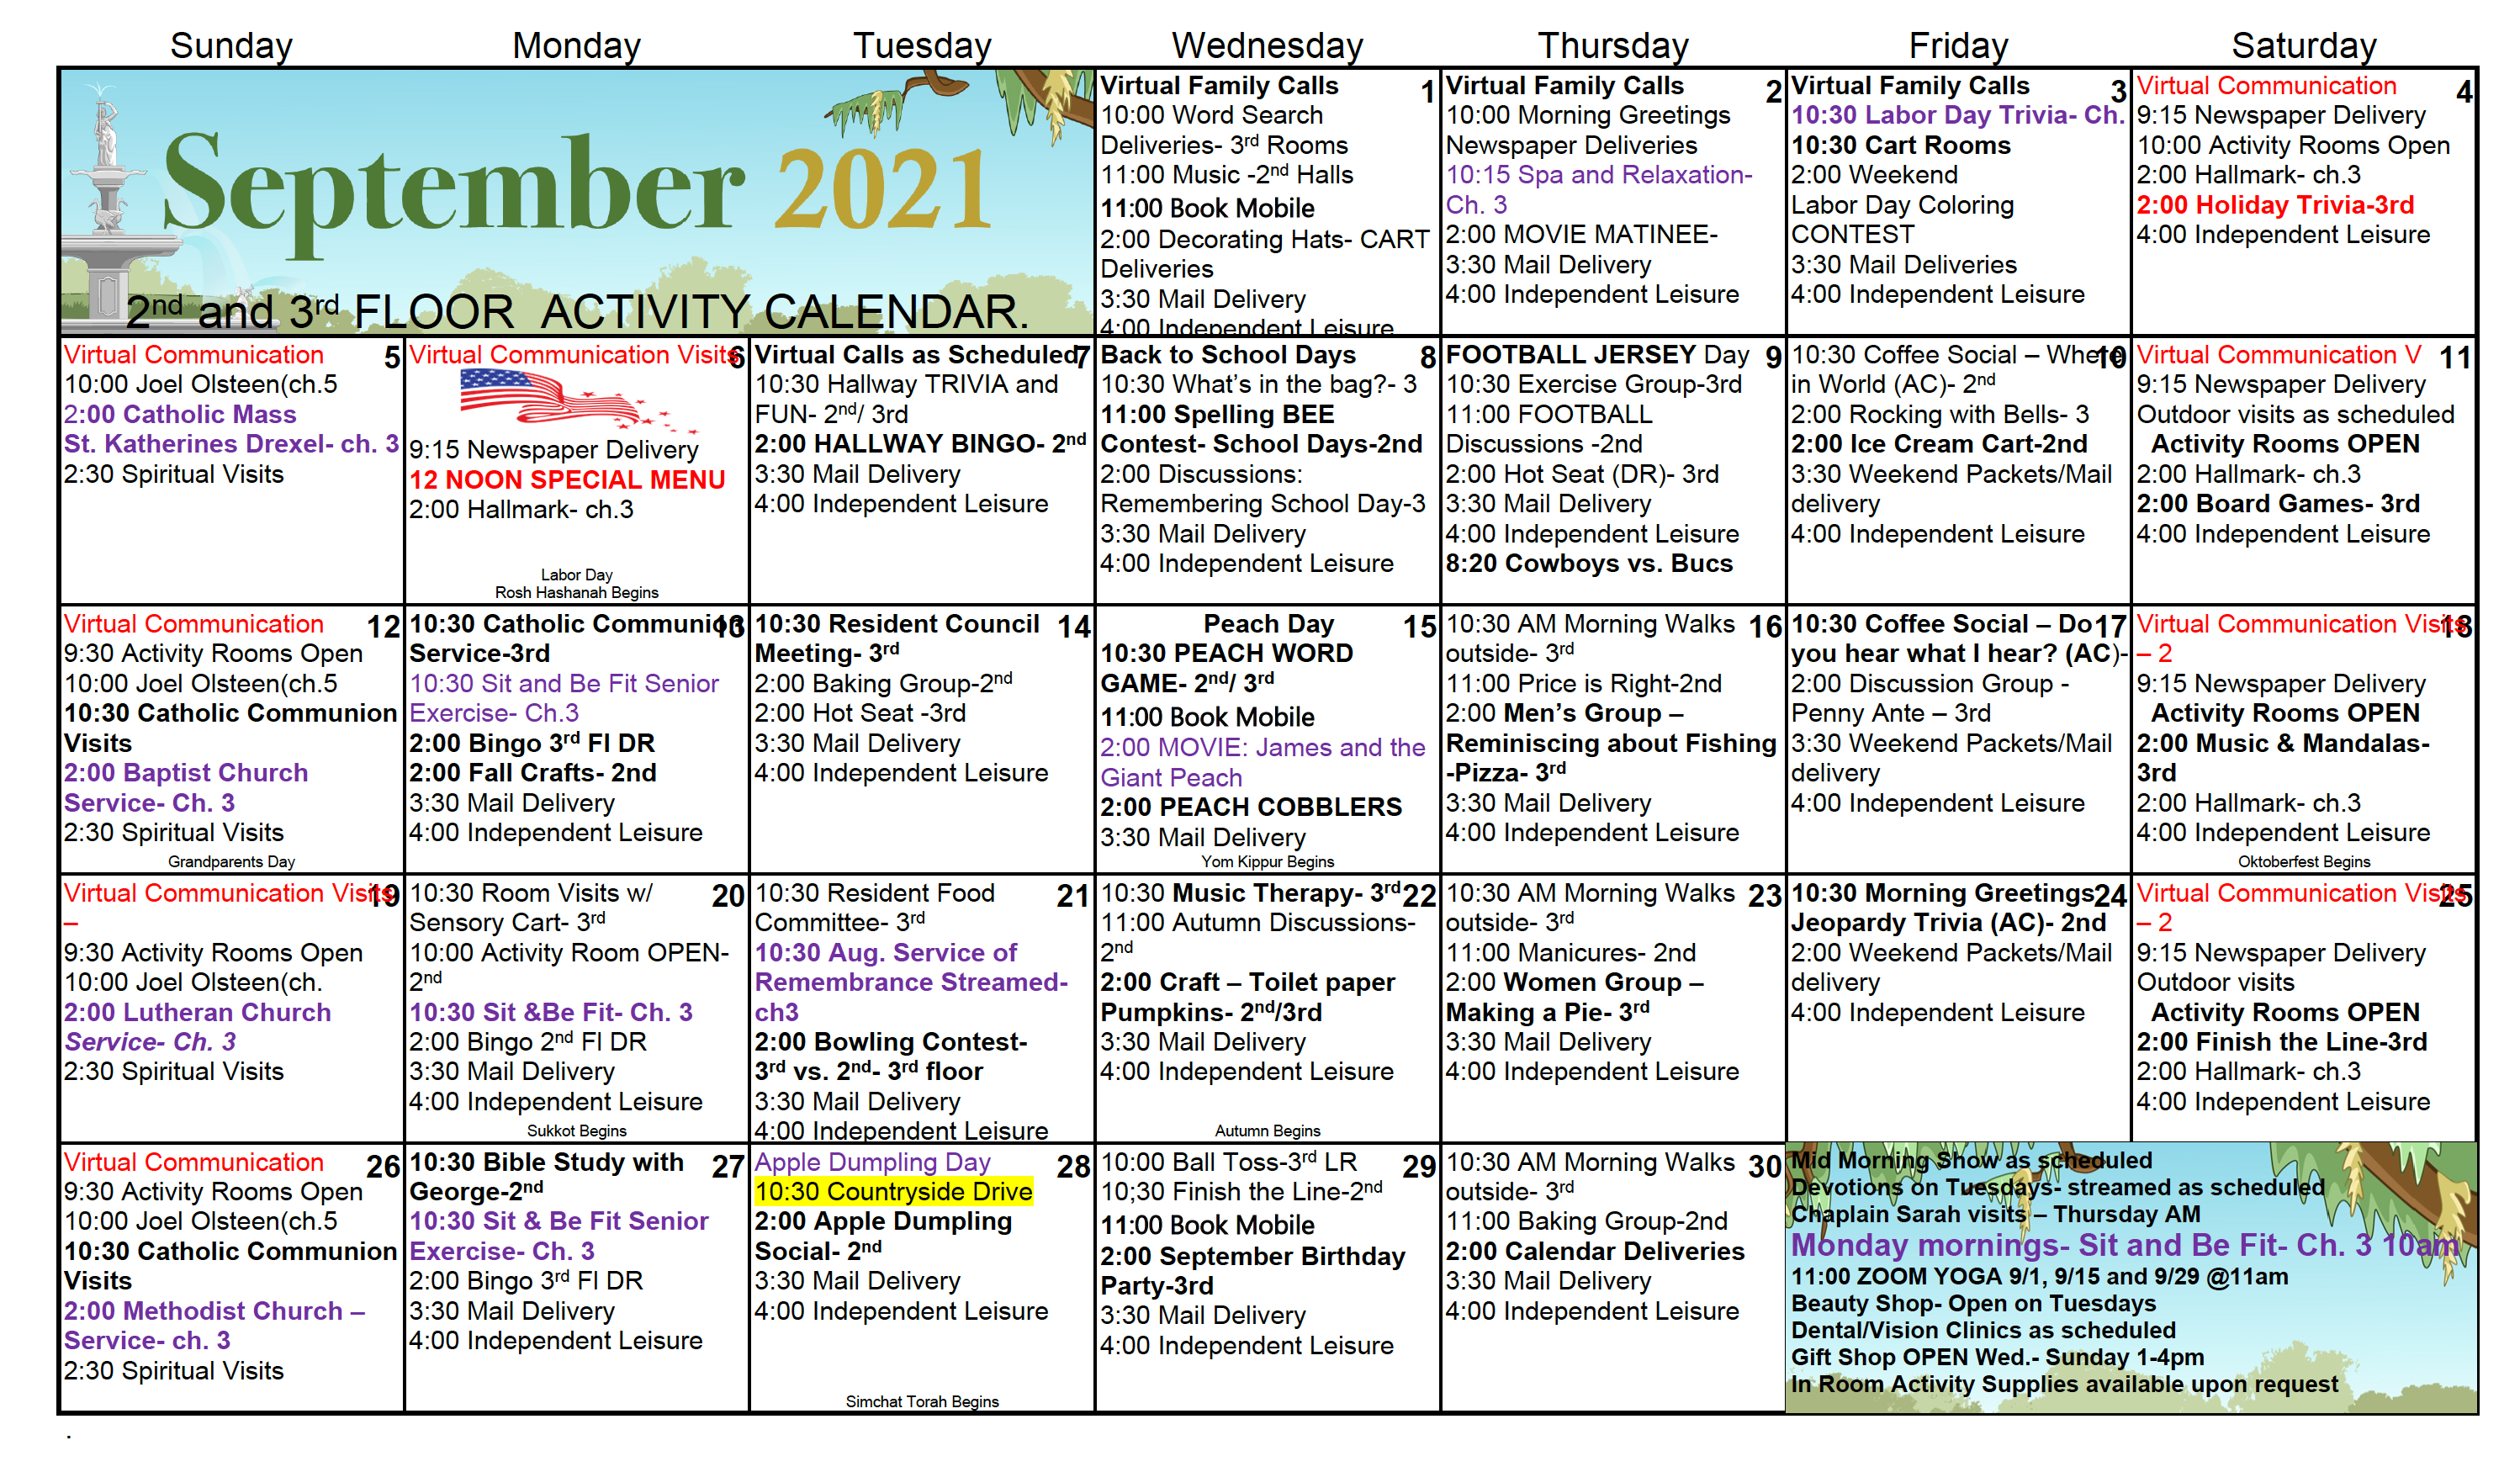 2nd And 3rd Floor Activity Calendar For Citizens Care Center